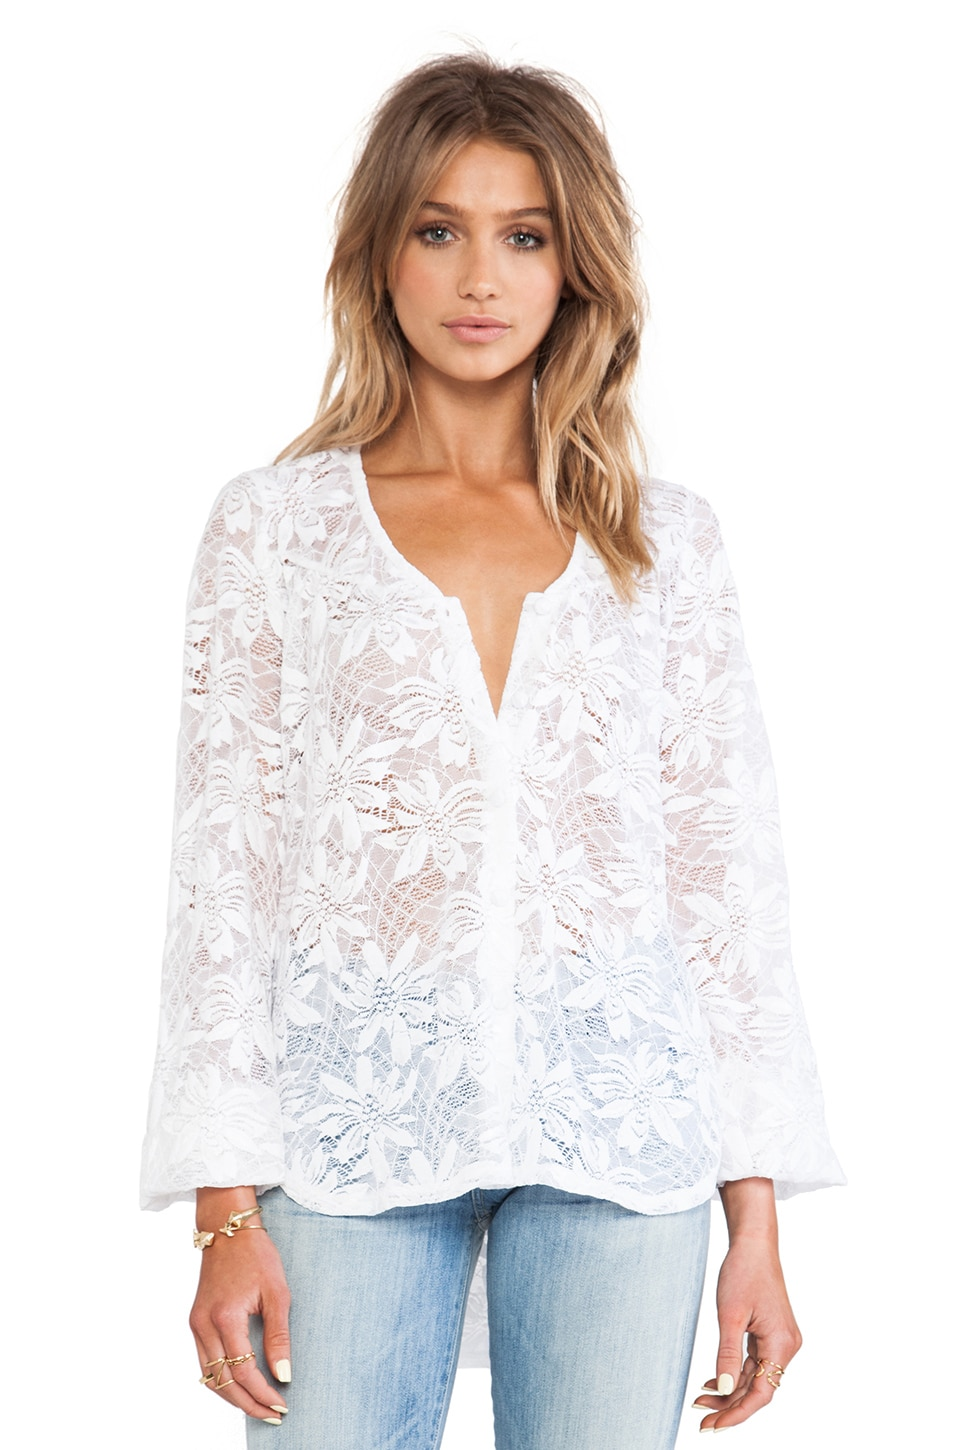 Nightcap Desert Bloom Blouse in White